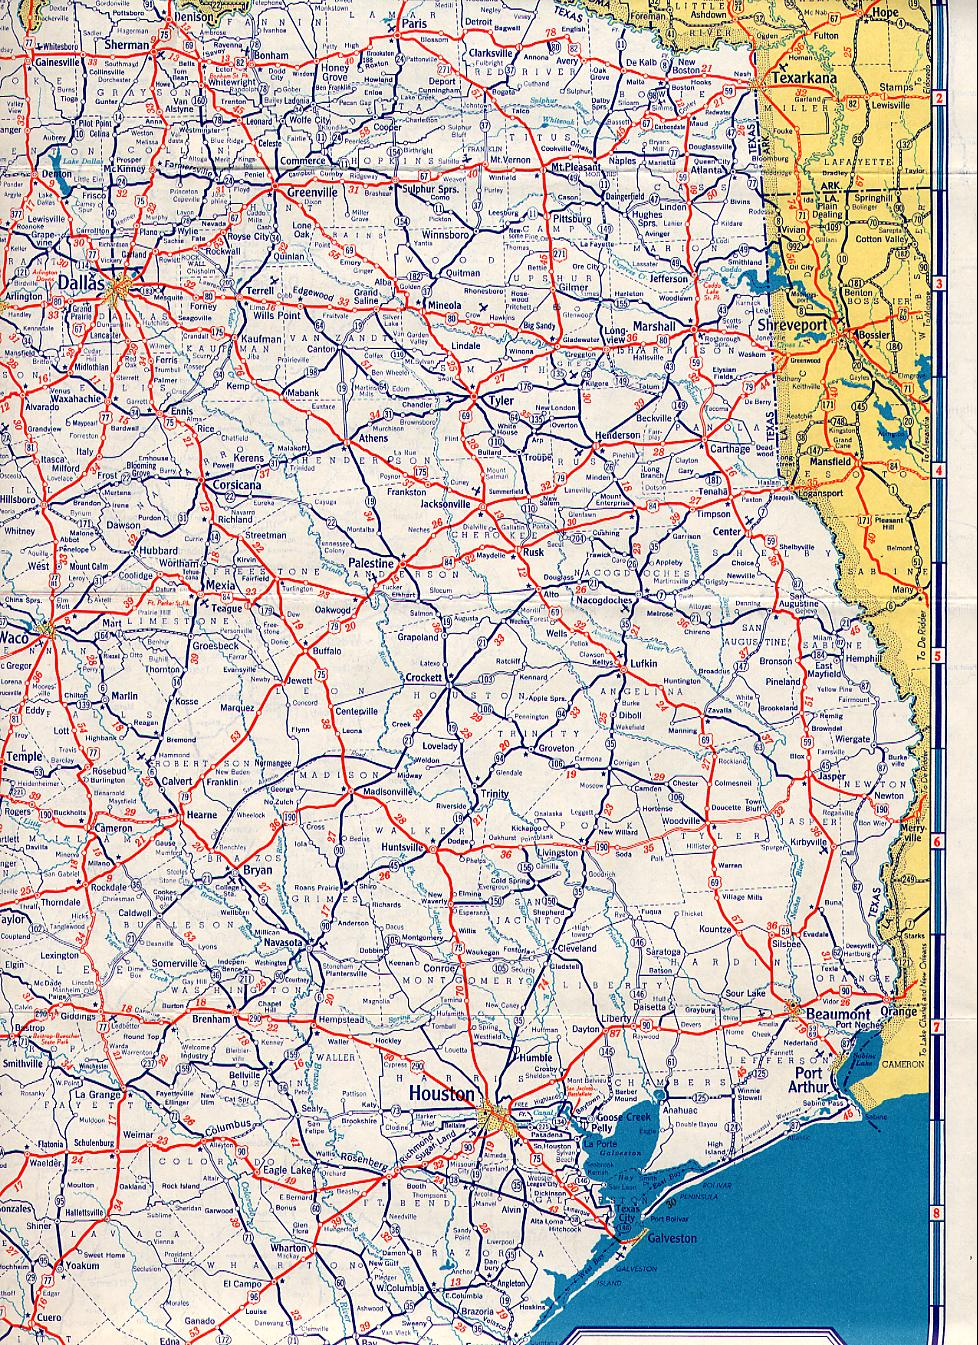 Road Map Of East Texas : texas, TexasFreeway, Statewide, Historic, Information